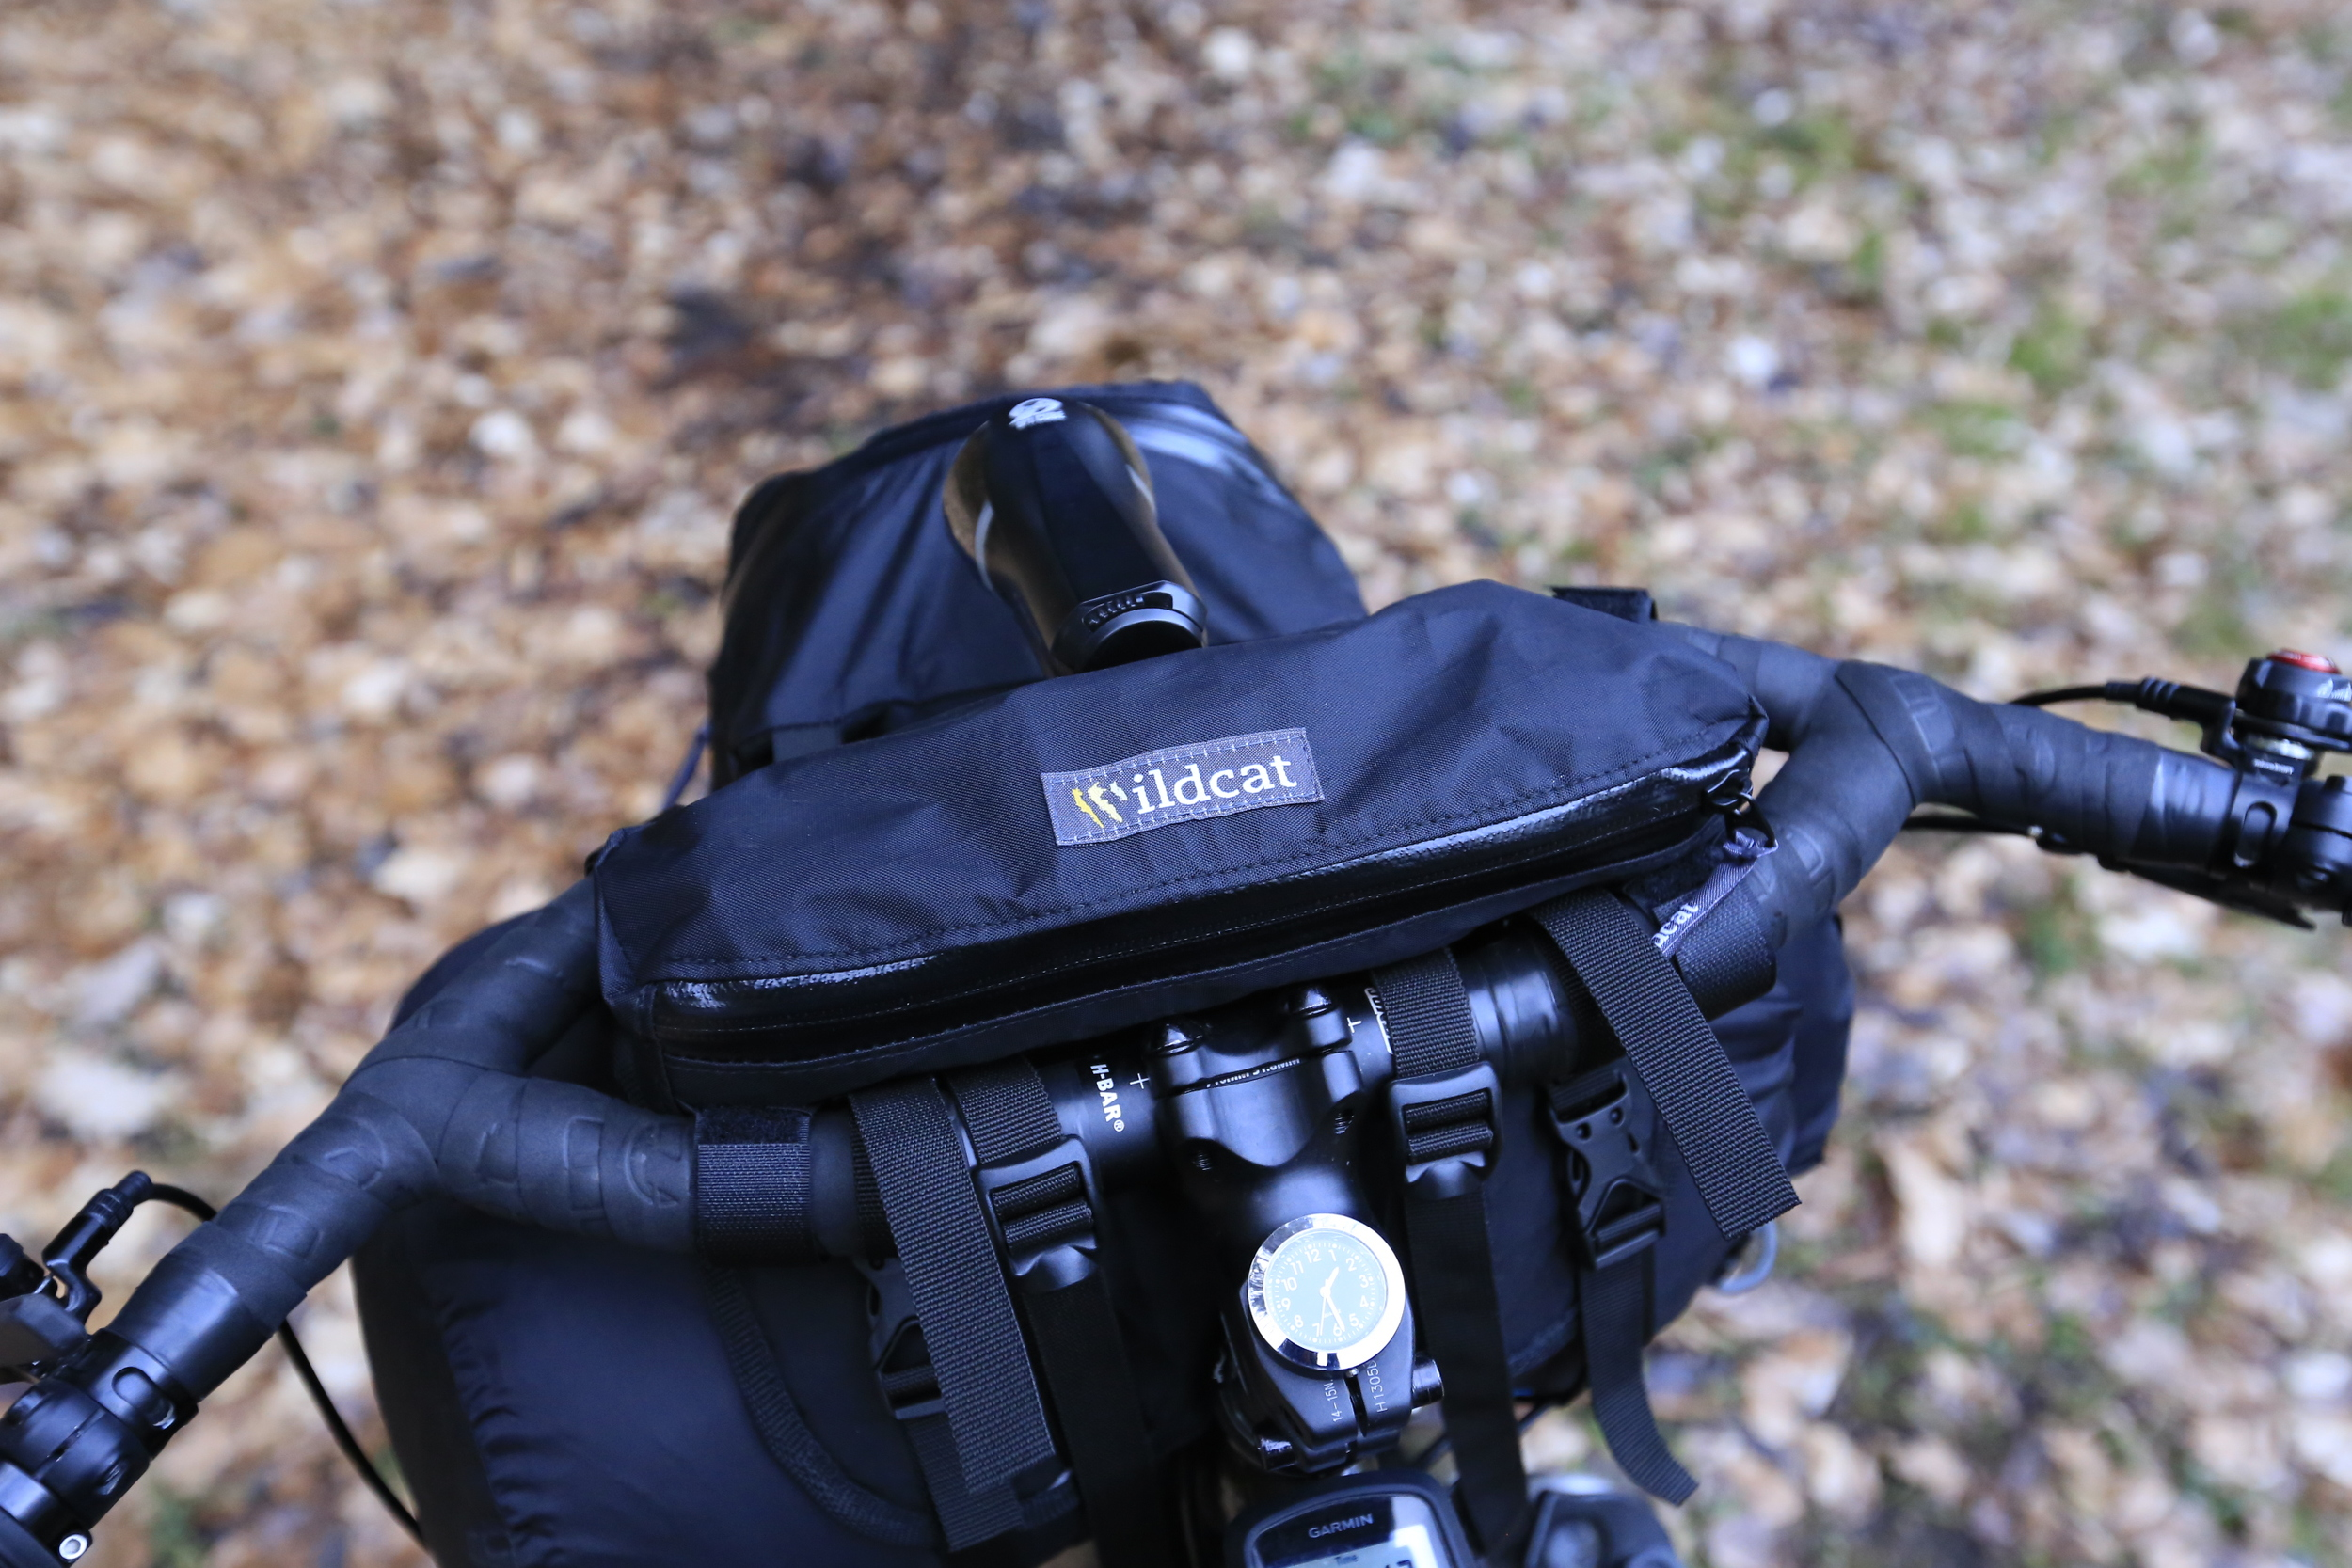 bikepacking harness, wildcat gear harness, wildcat gear mountain lion, bikepacking blog, cycling blog, travel blog, photography blog, surly, surly ecr